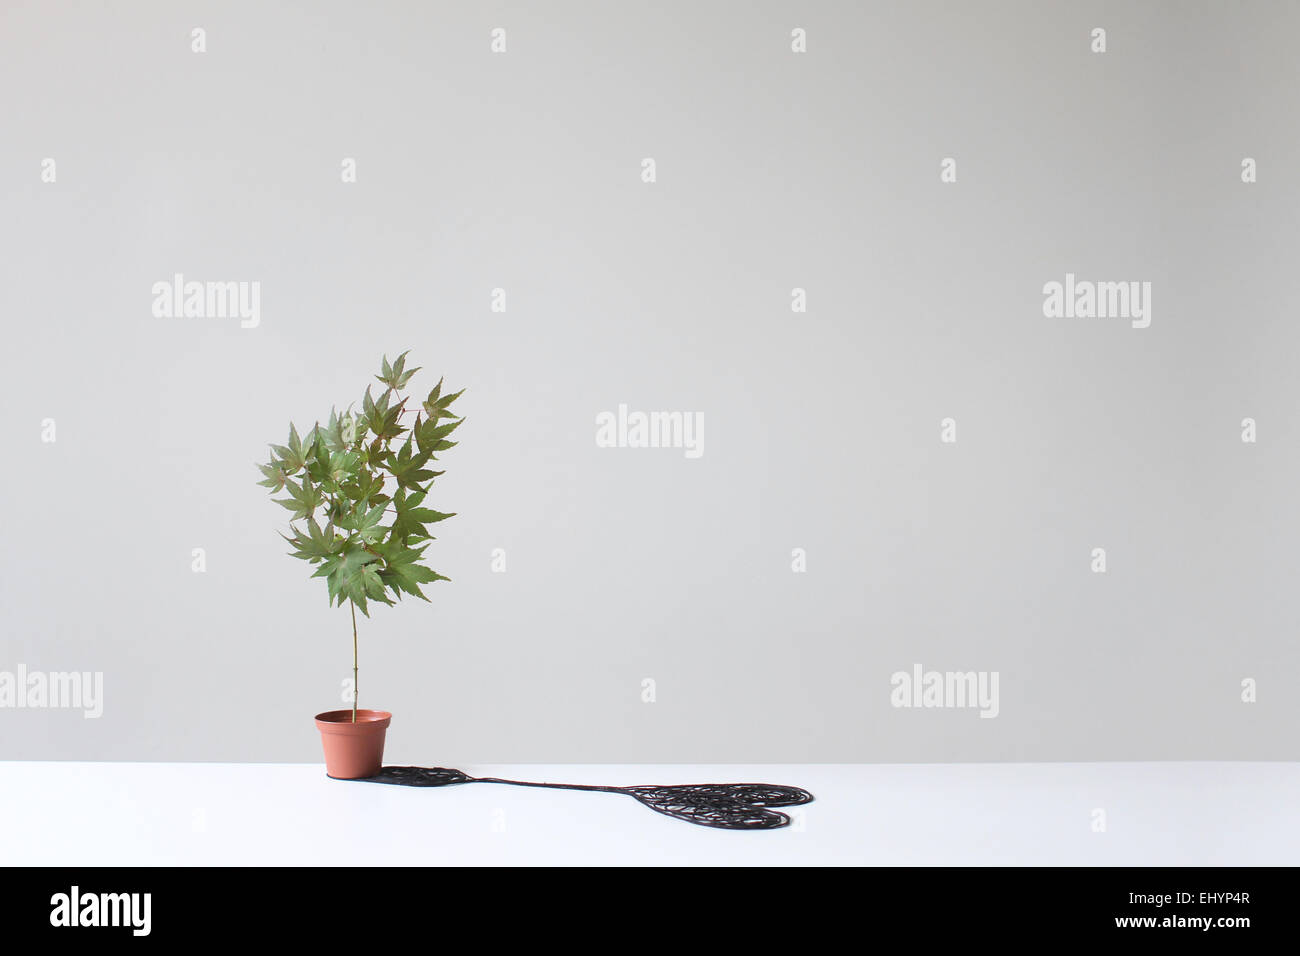 Tree in a pot casting a  heart shaped shadow on a table - Stock Image